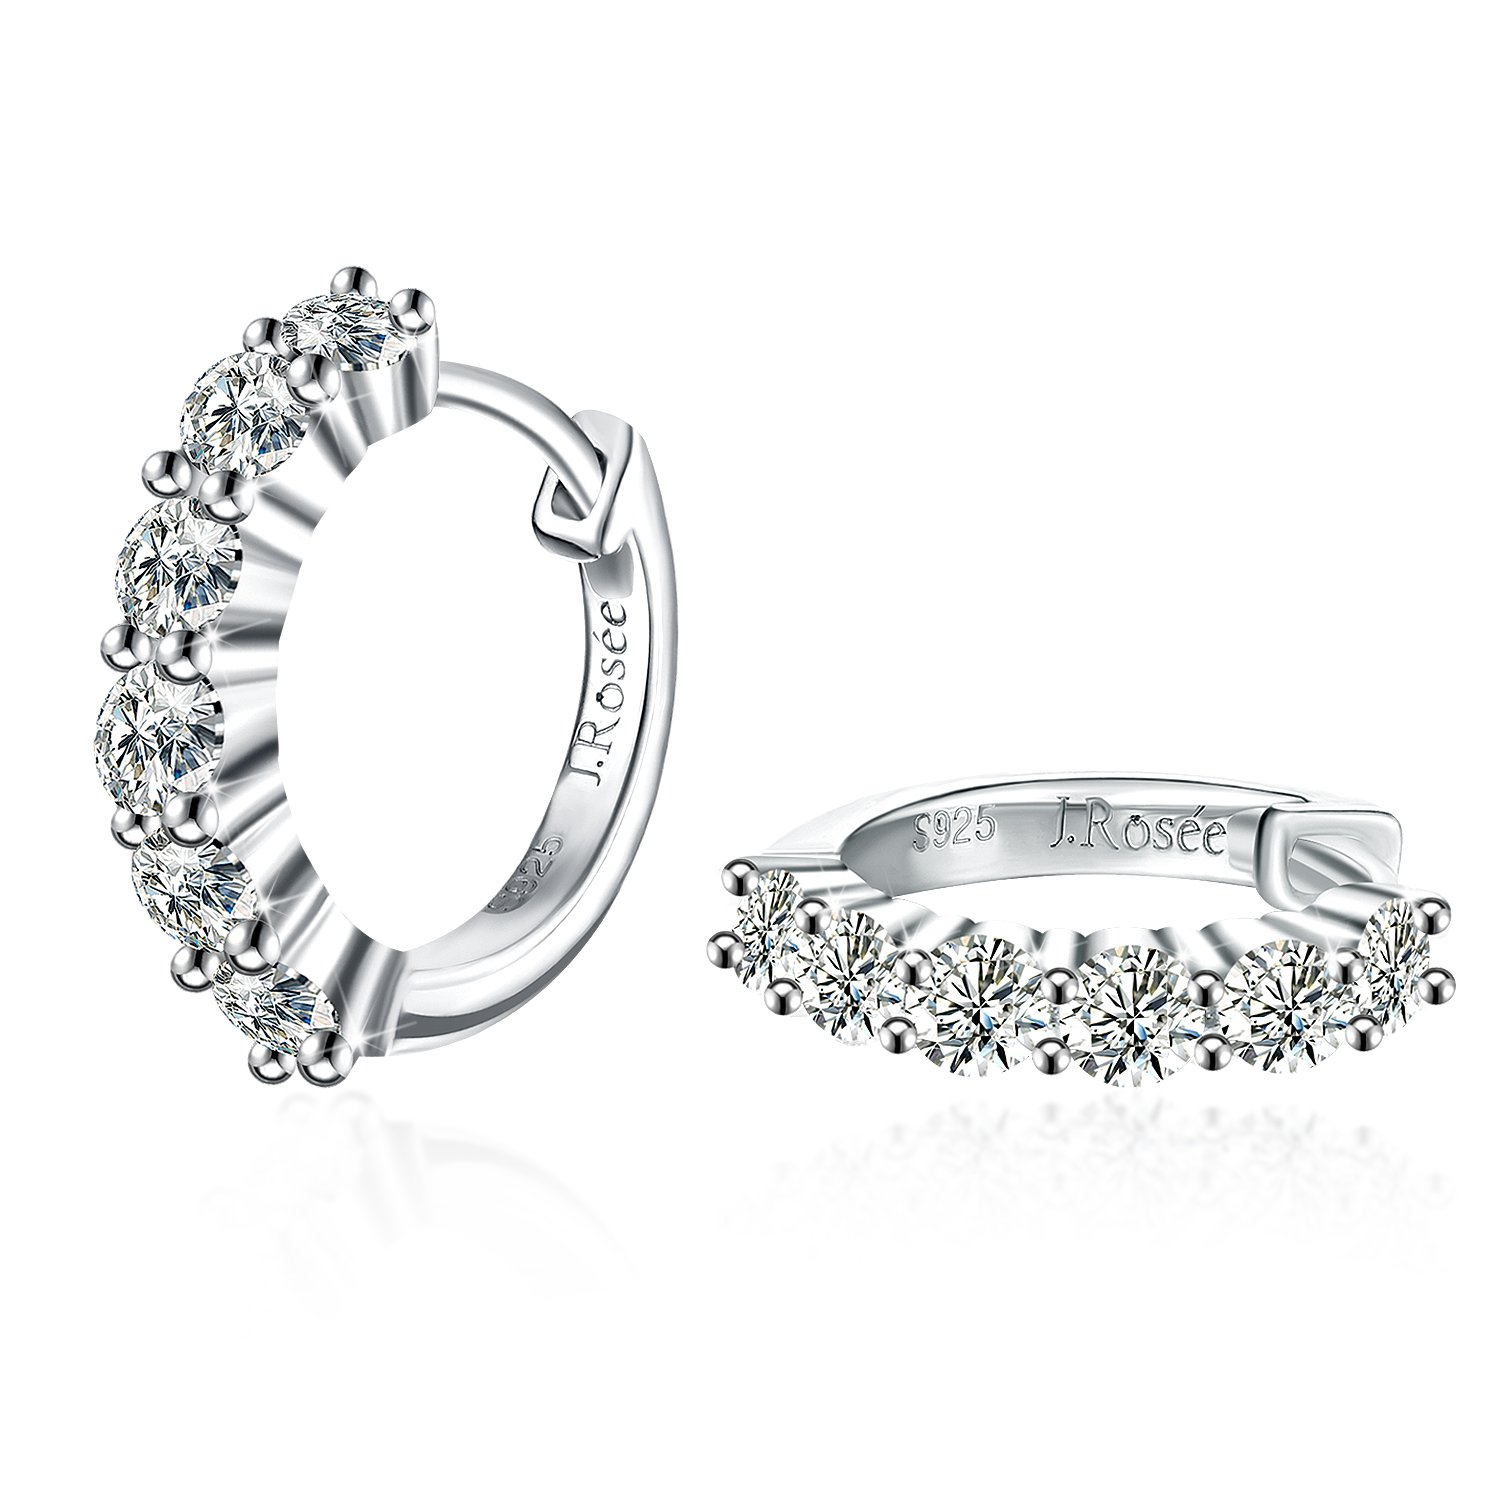 J.Rosée Women 925 Sterling Silver High Polished Cubic Zirconia Small Hinged Hoop Earrings